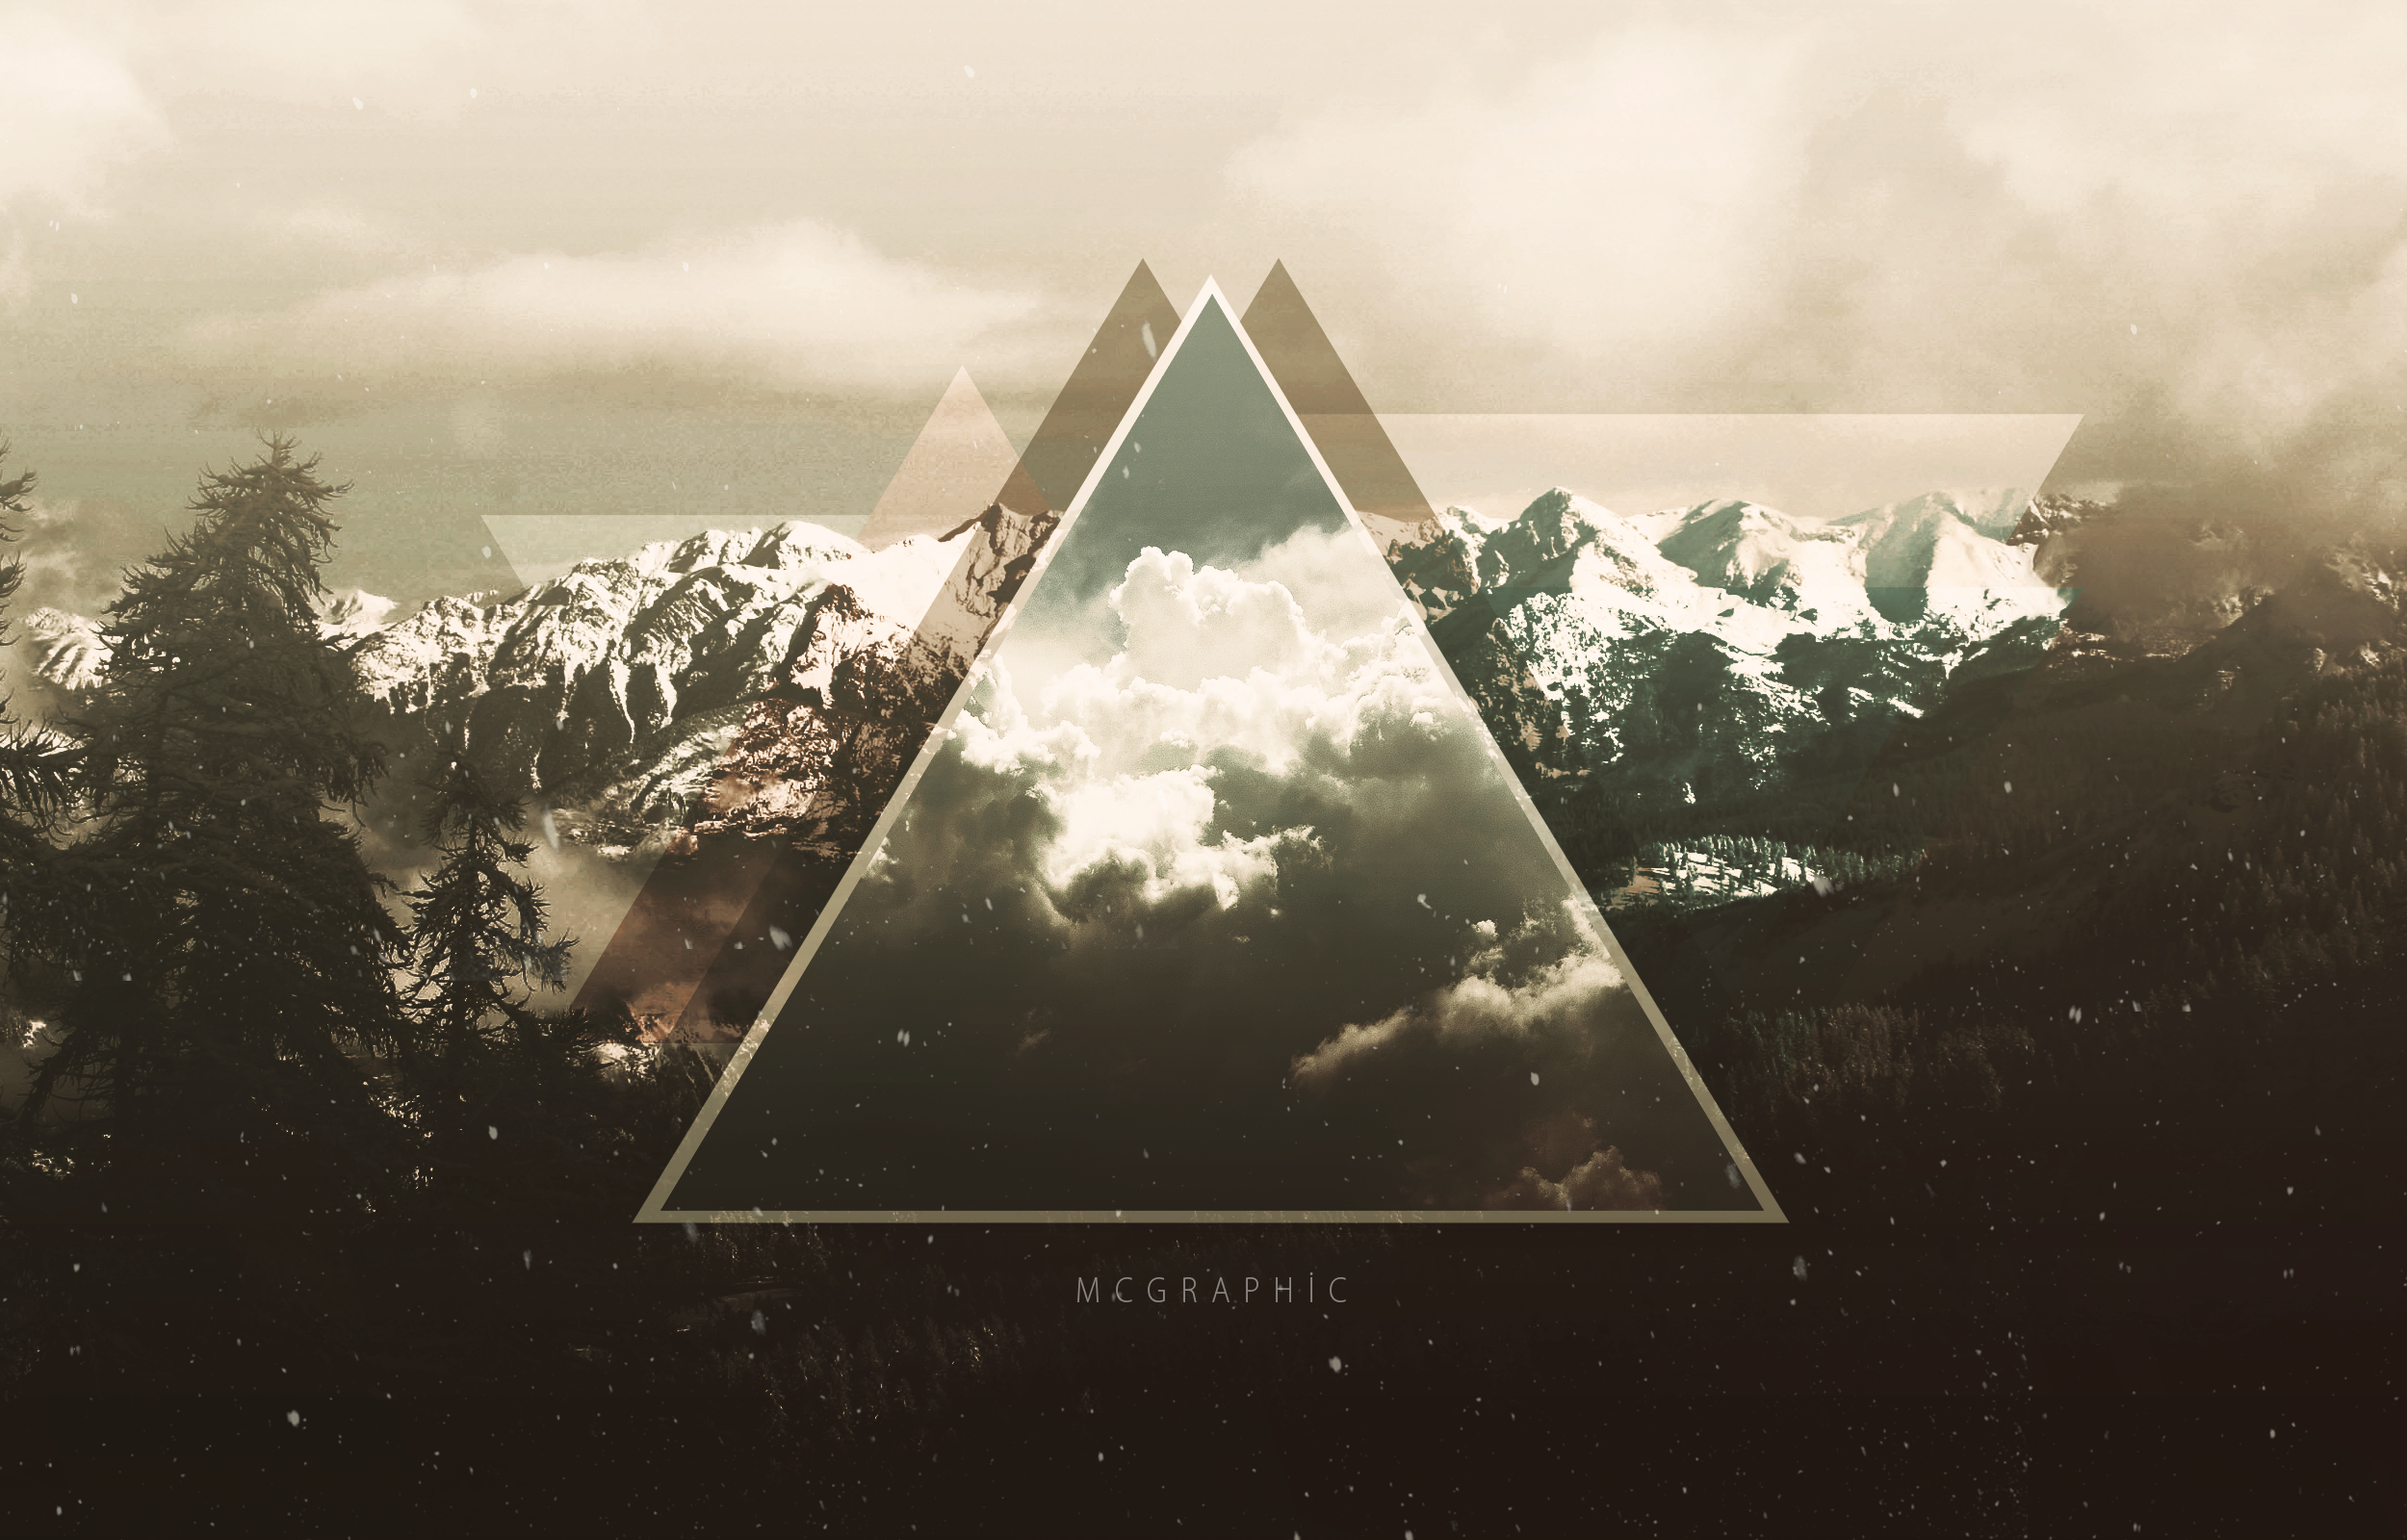 TRIANGLE WALLPAPER TUMBLR by MCGraphic 2500x1600